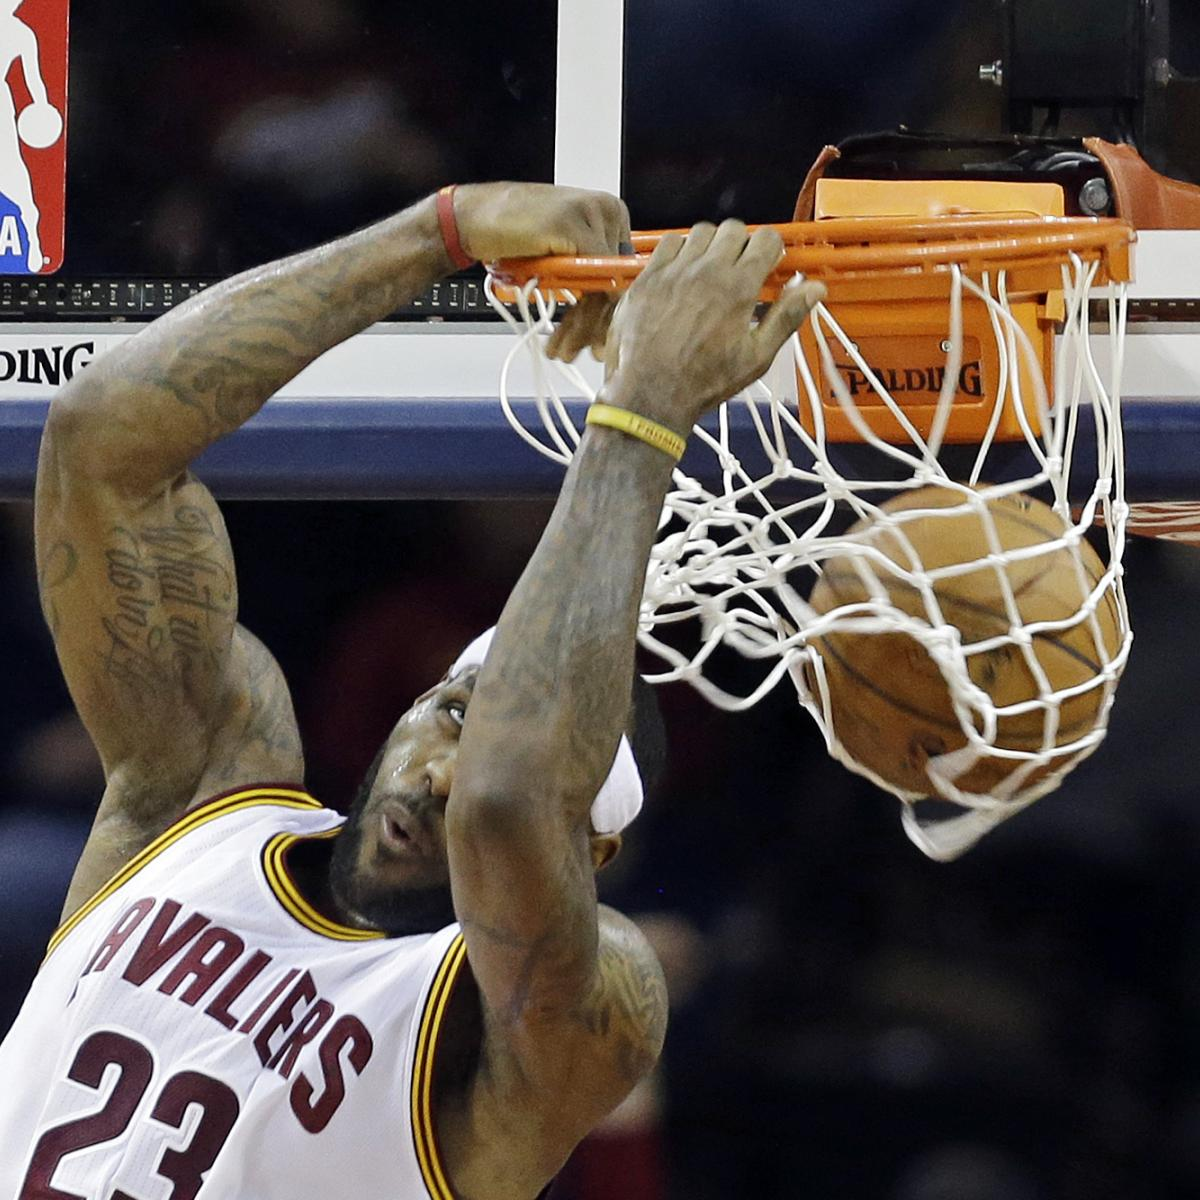 Cleveland Cavaliers Fans Scale Walls To Get Photos Of Nba: NBA All-Star Game 2015 Rosters: Starters, Snubs And